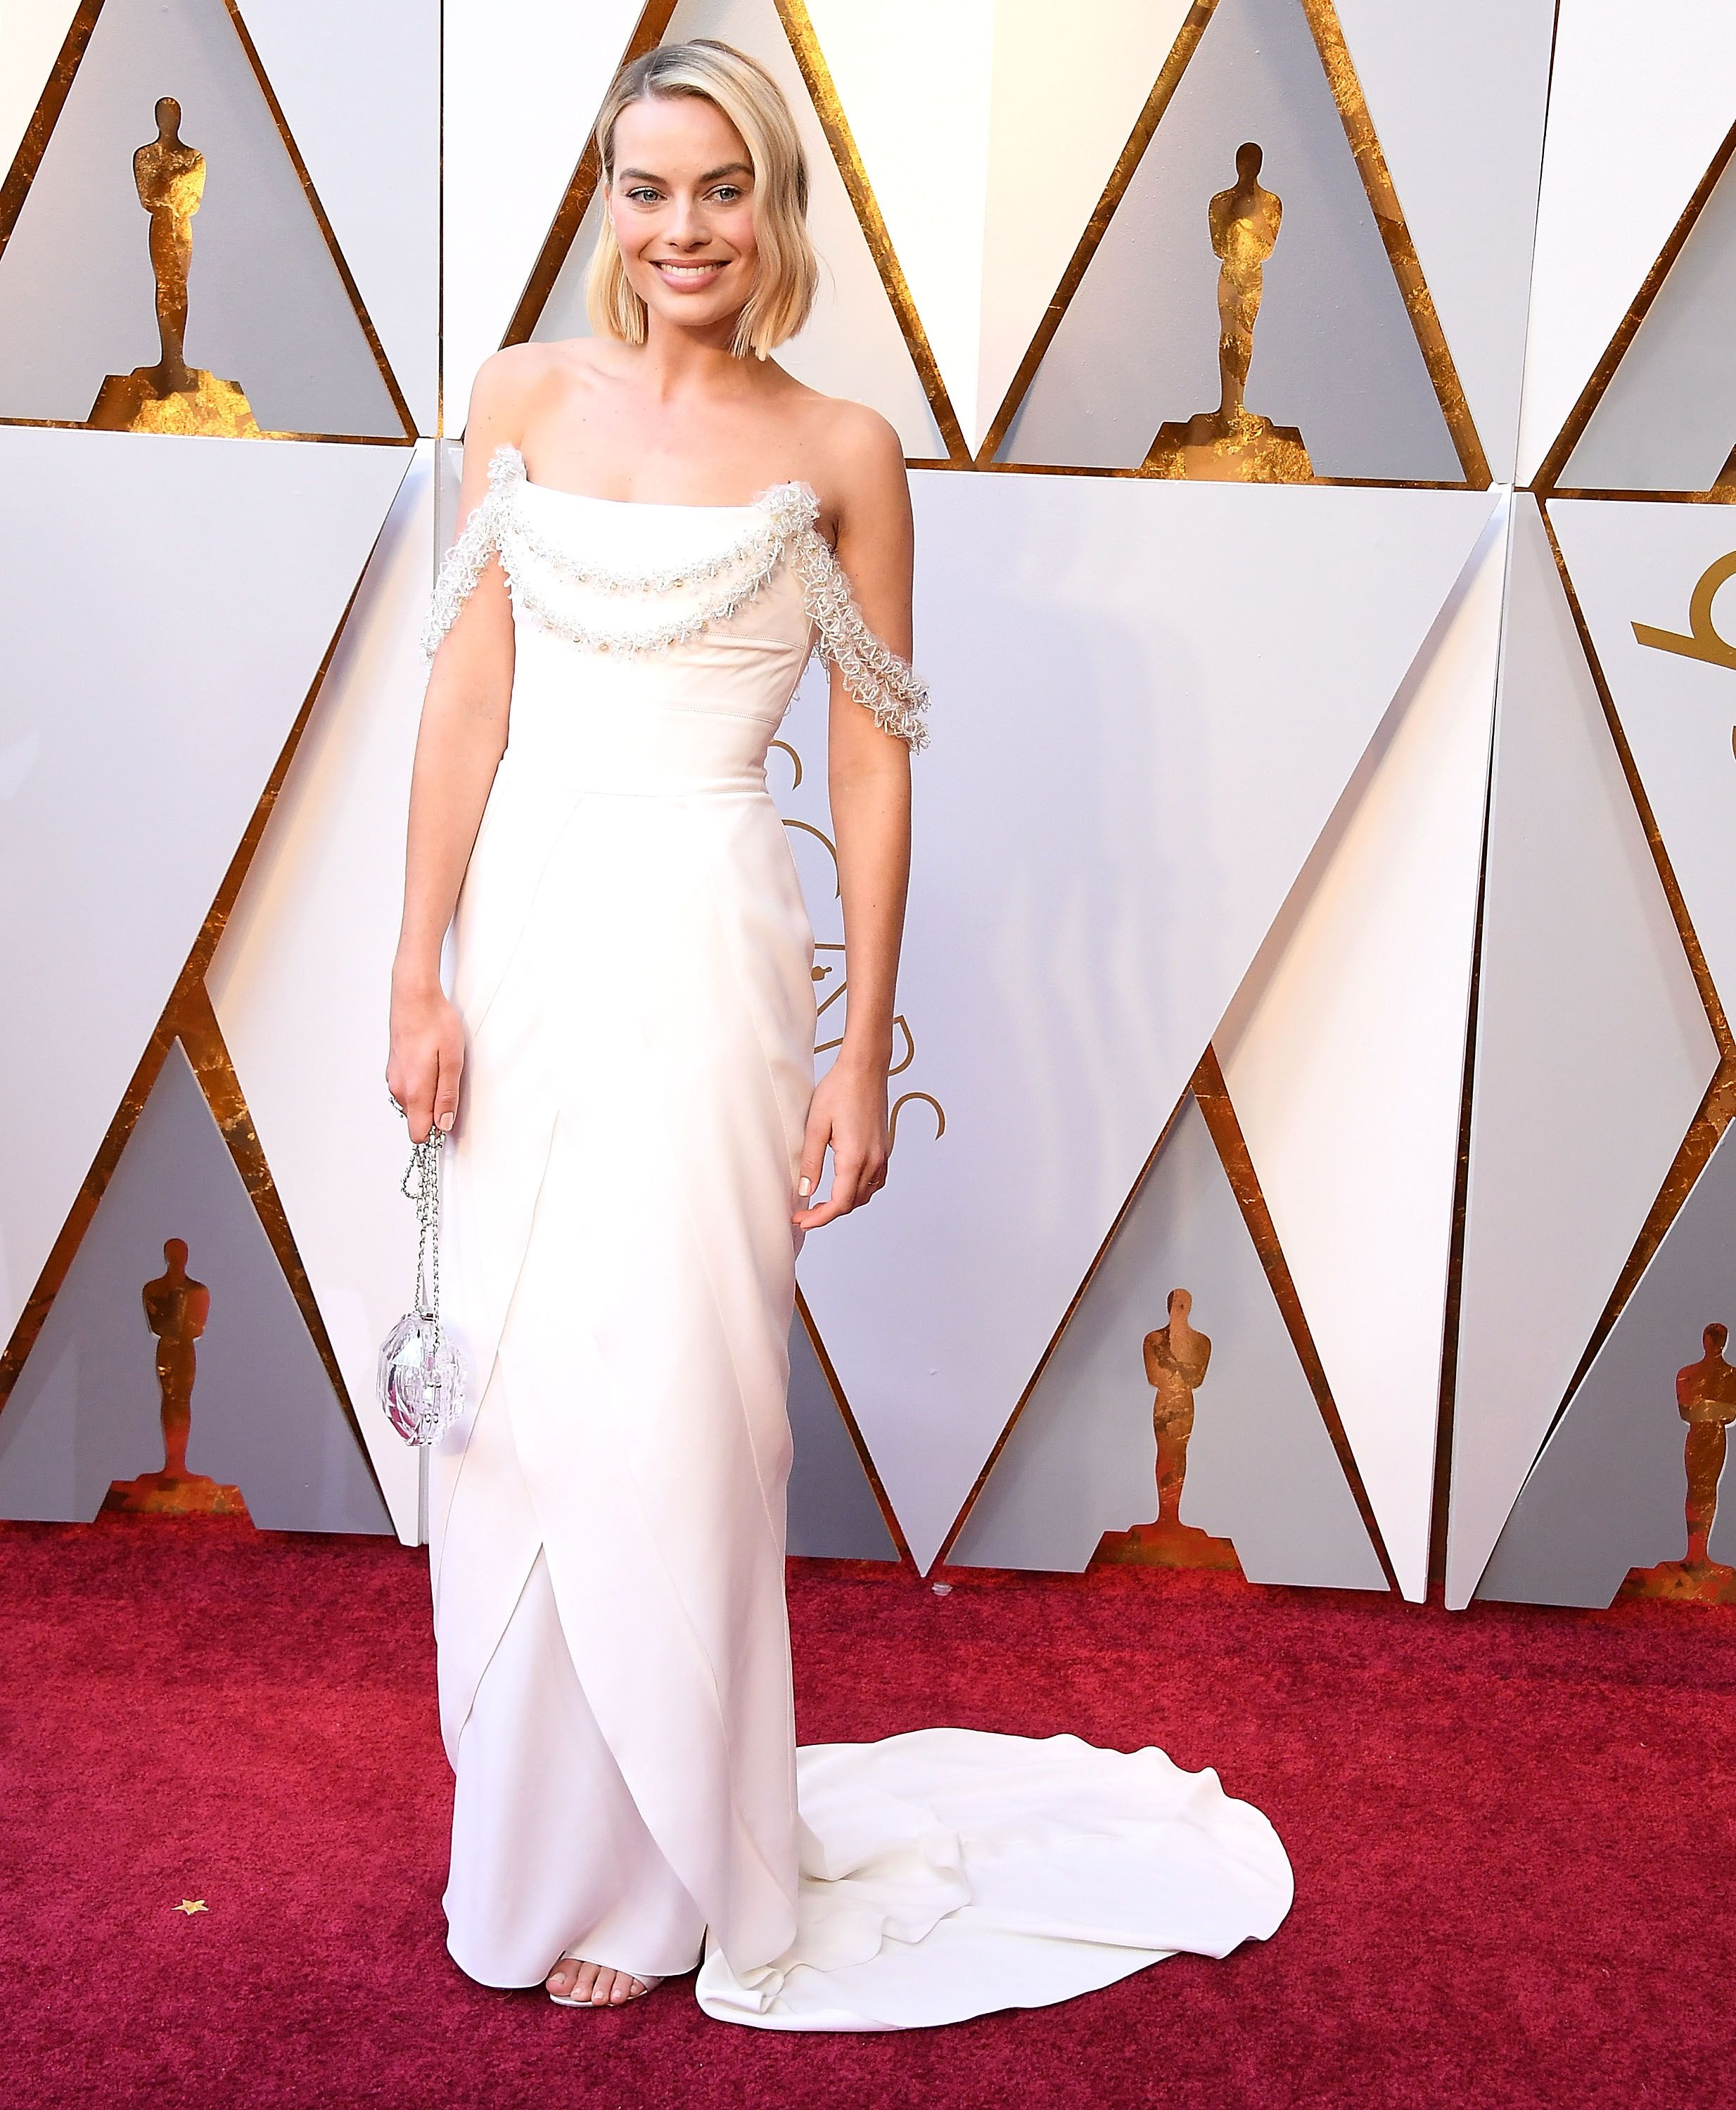 The Oscar-nominee wore feminine custome Chanel with delicate detailing at the bodice to the 90th Academy Awards.